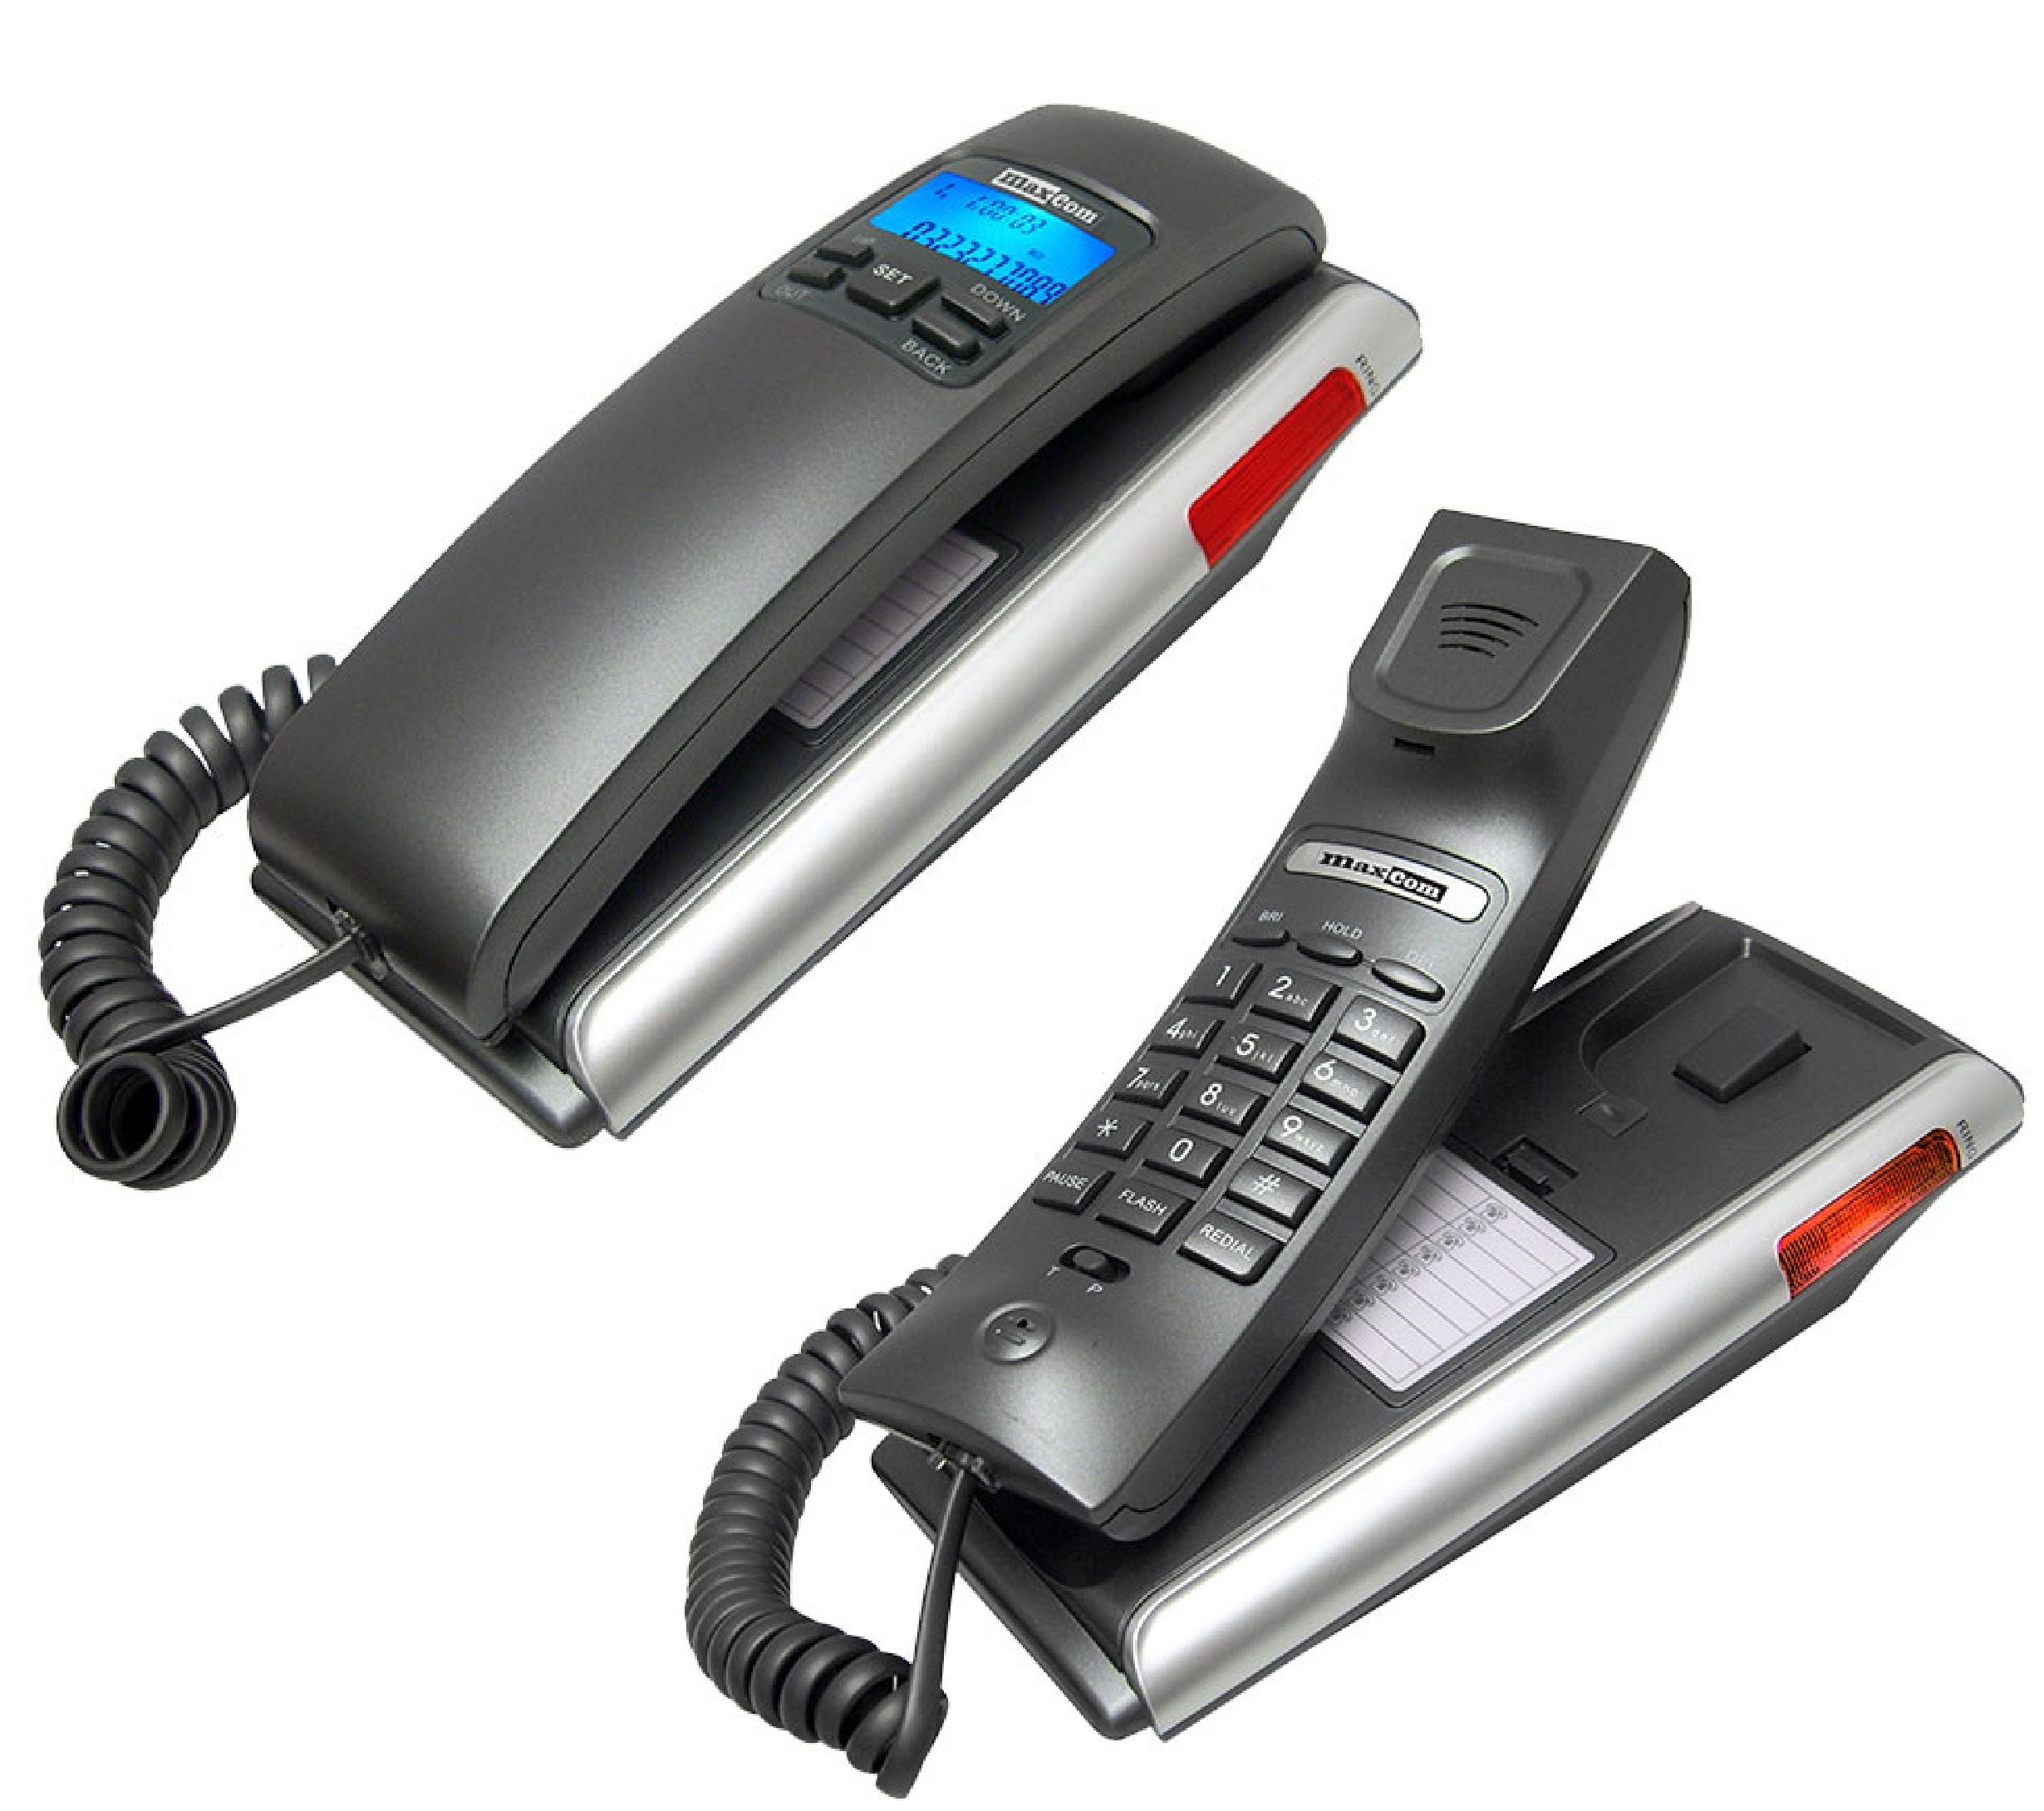 Item MAXCOM LANDLINE PHONE KXT400 wall mounting